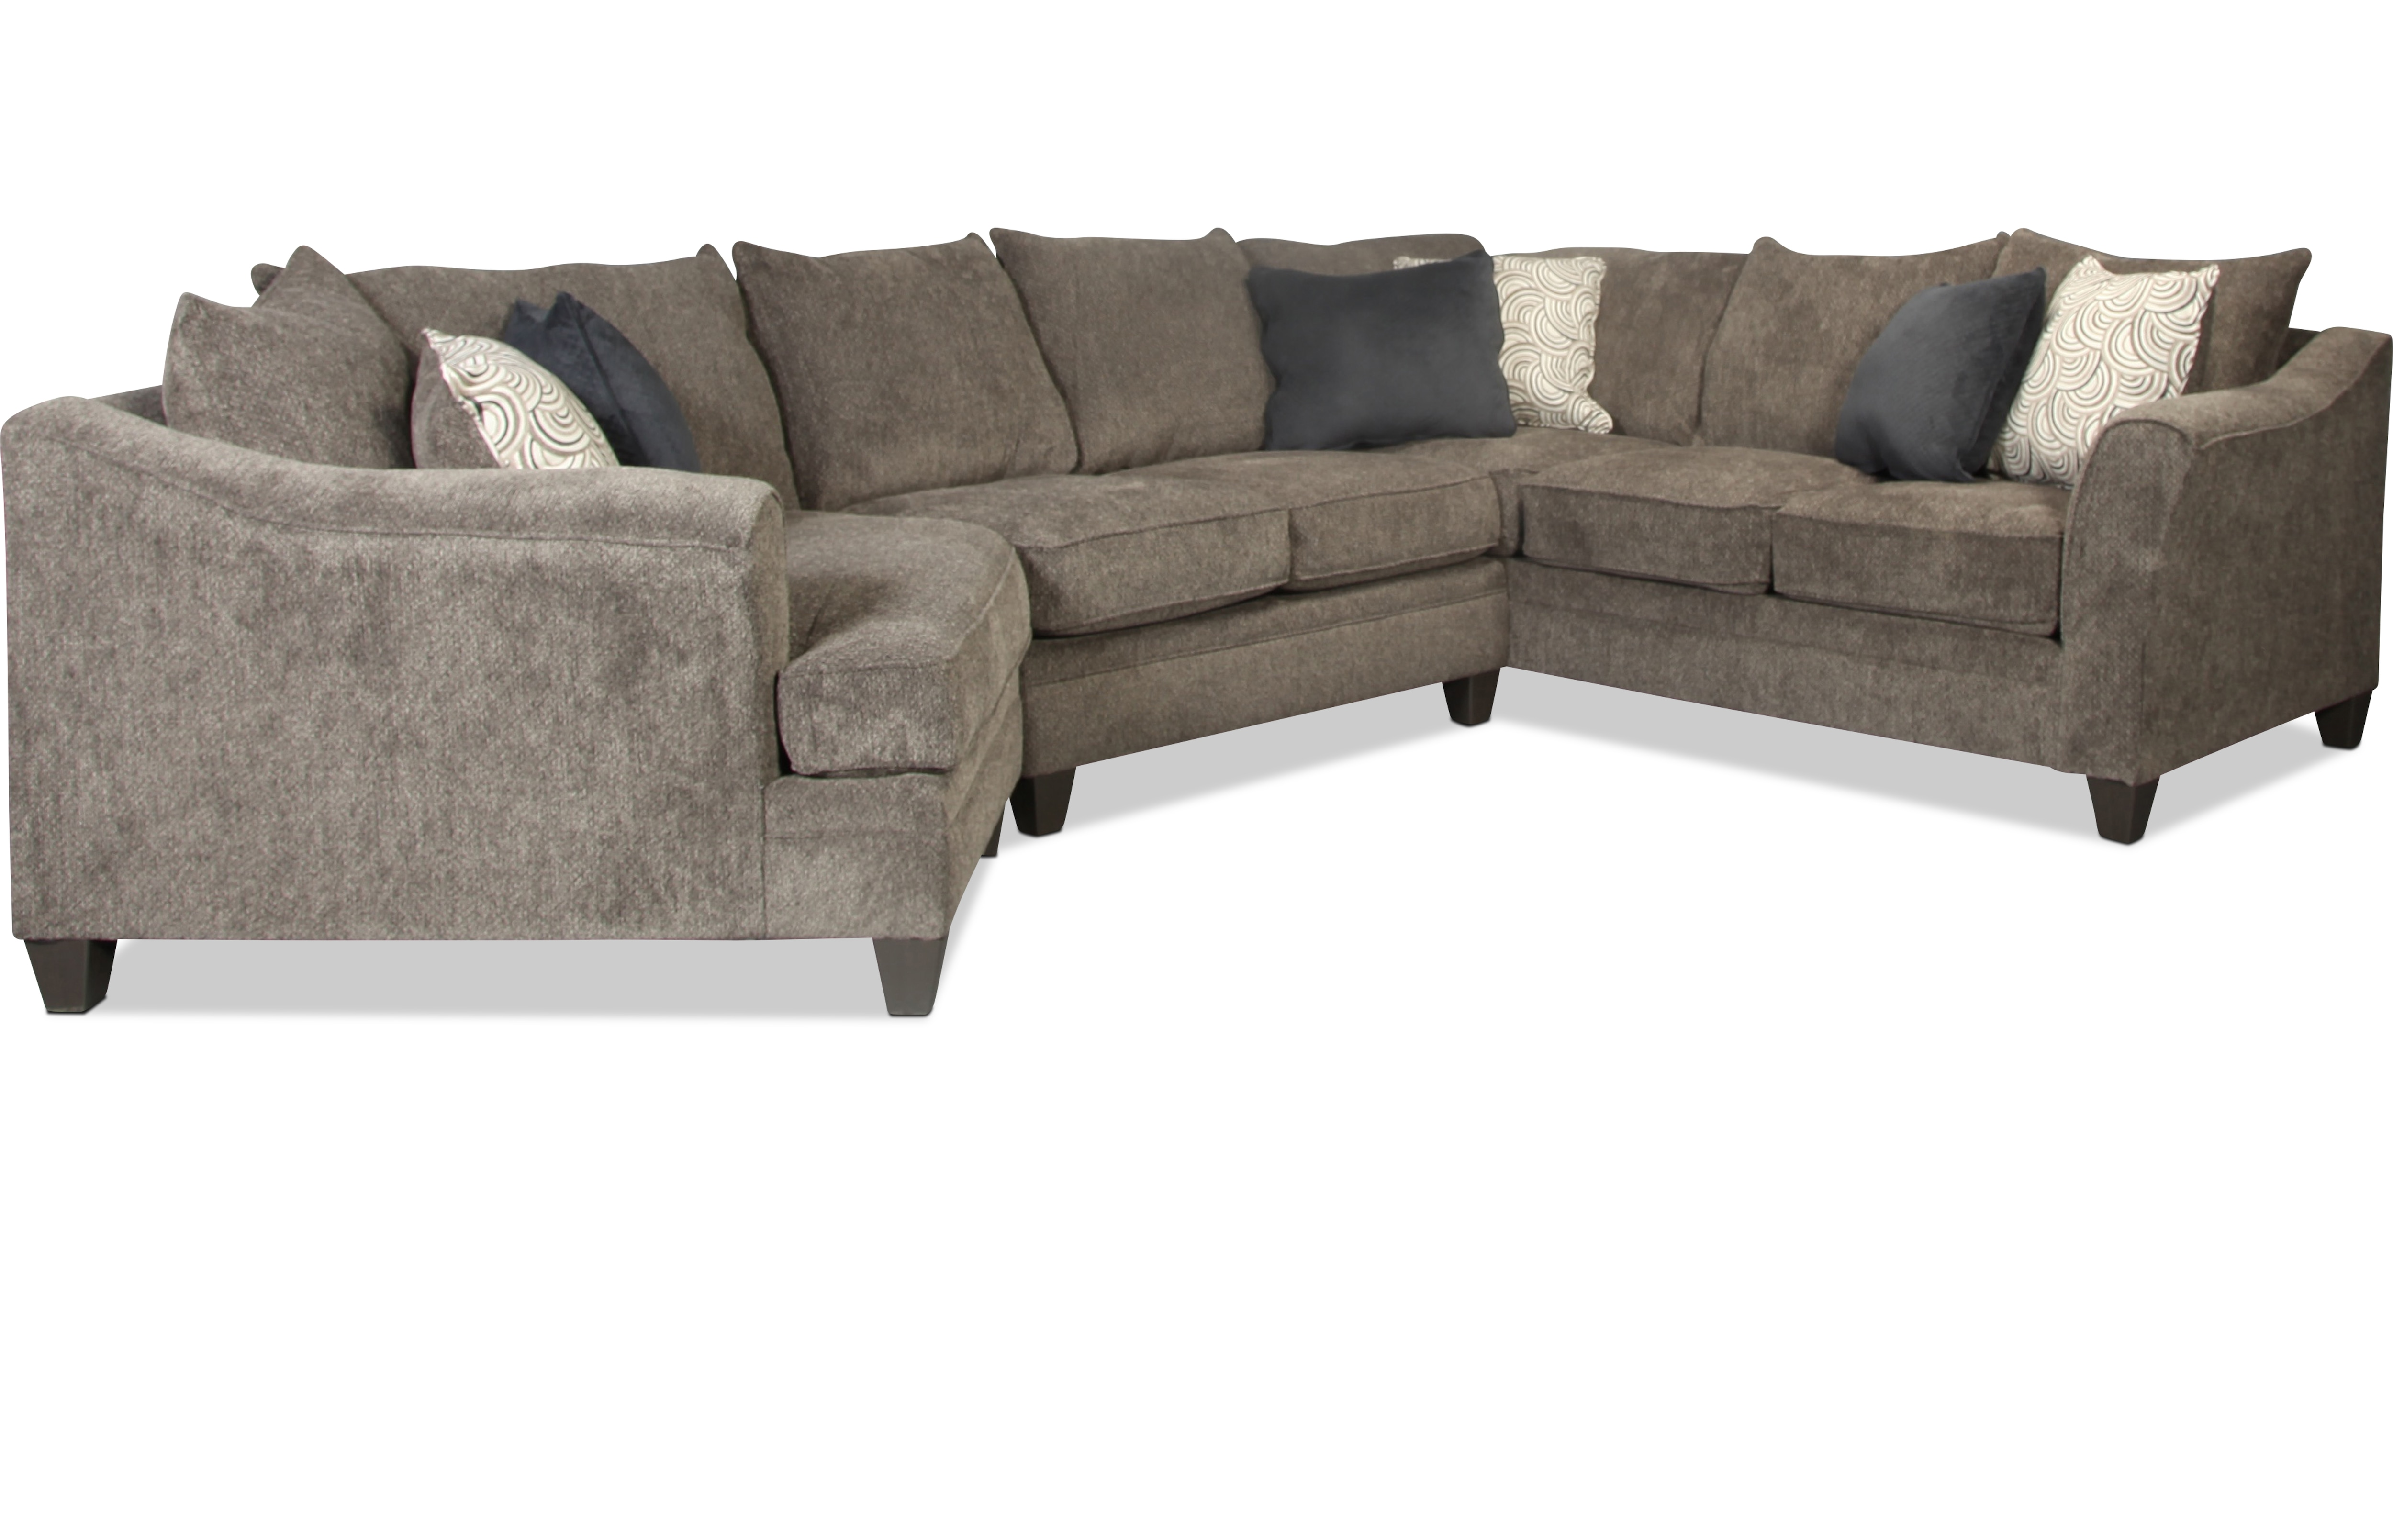 Desmond 3 Piece Sectional - Pewter